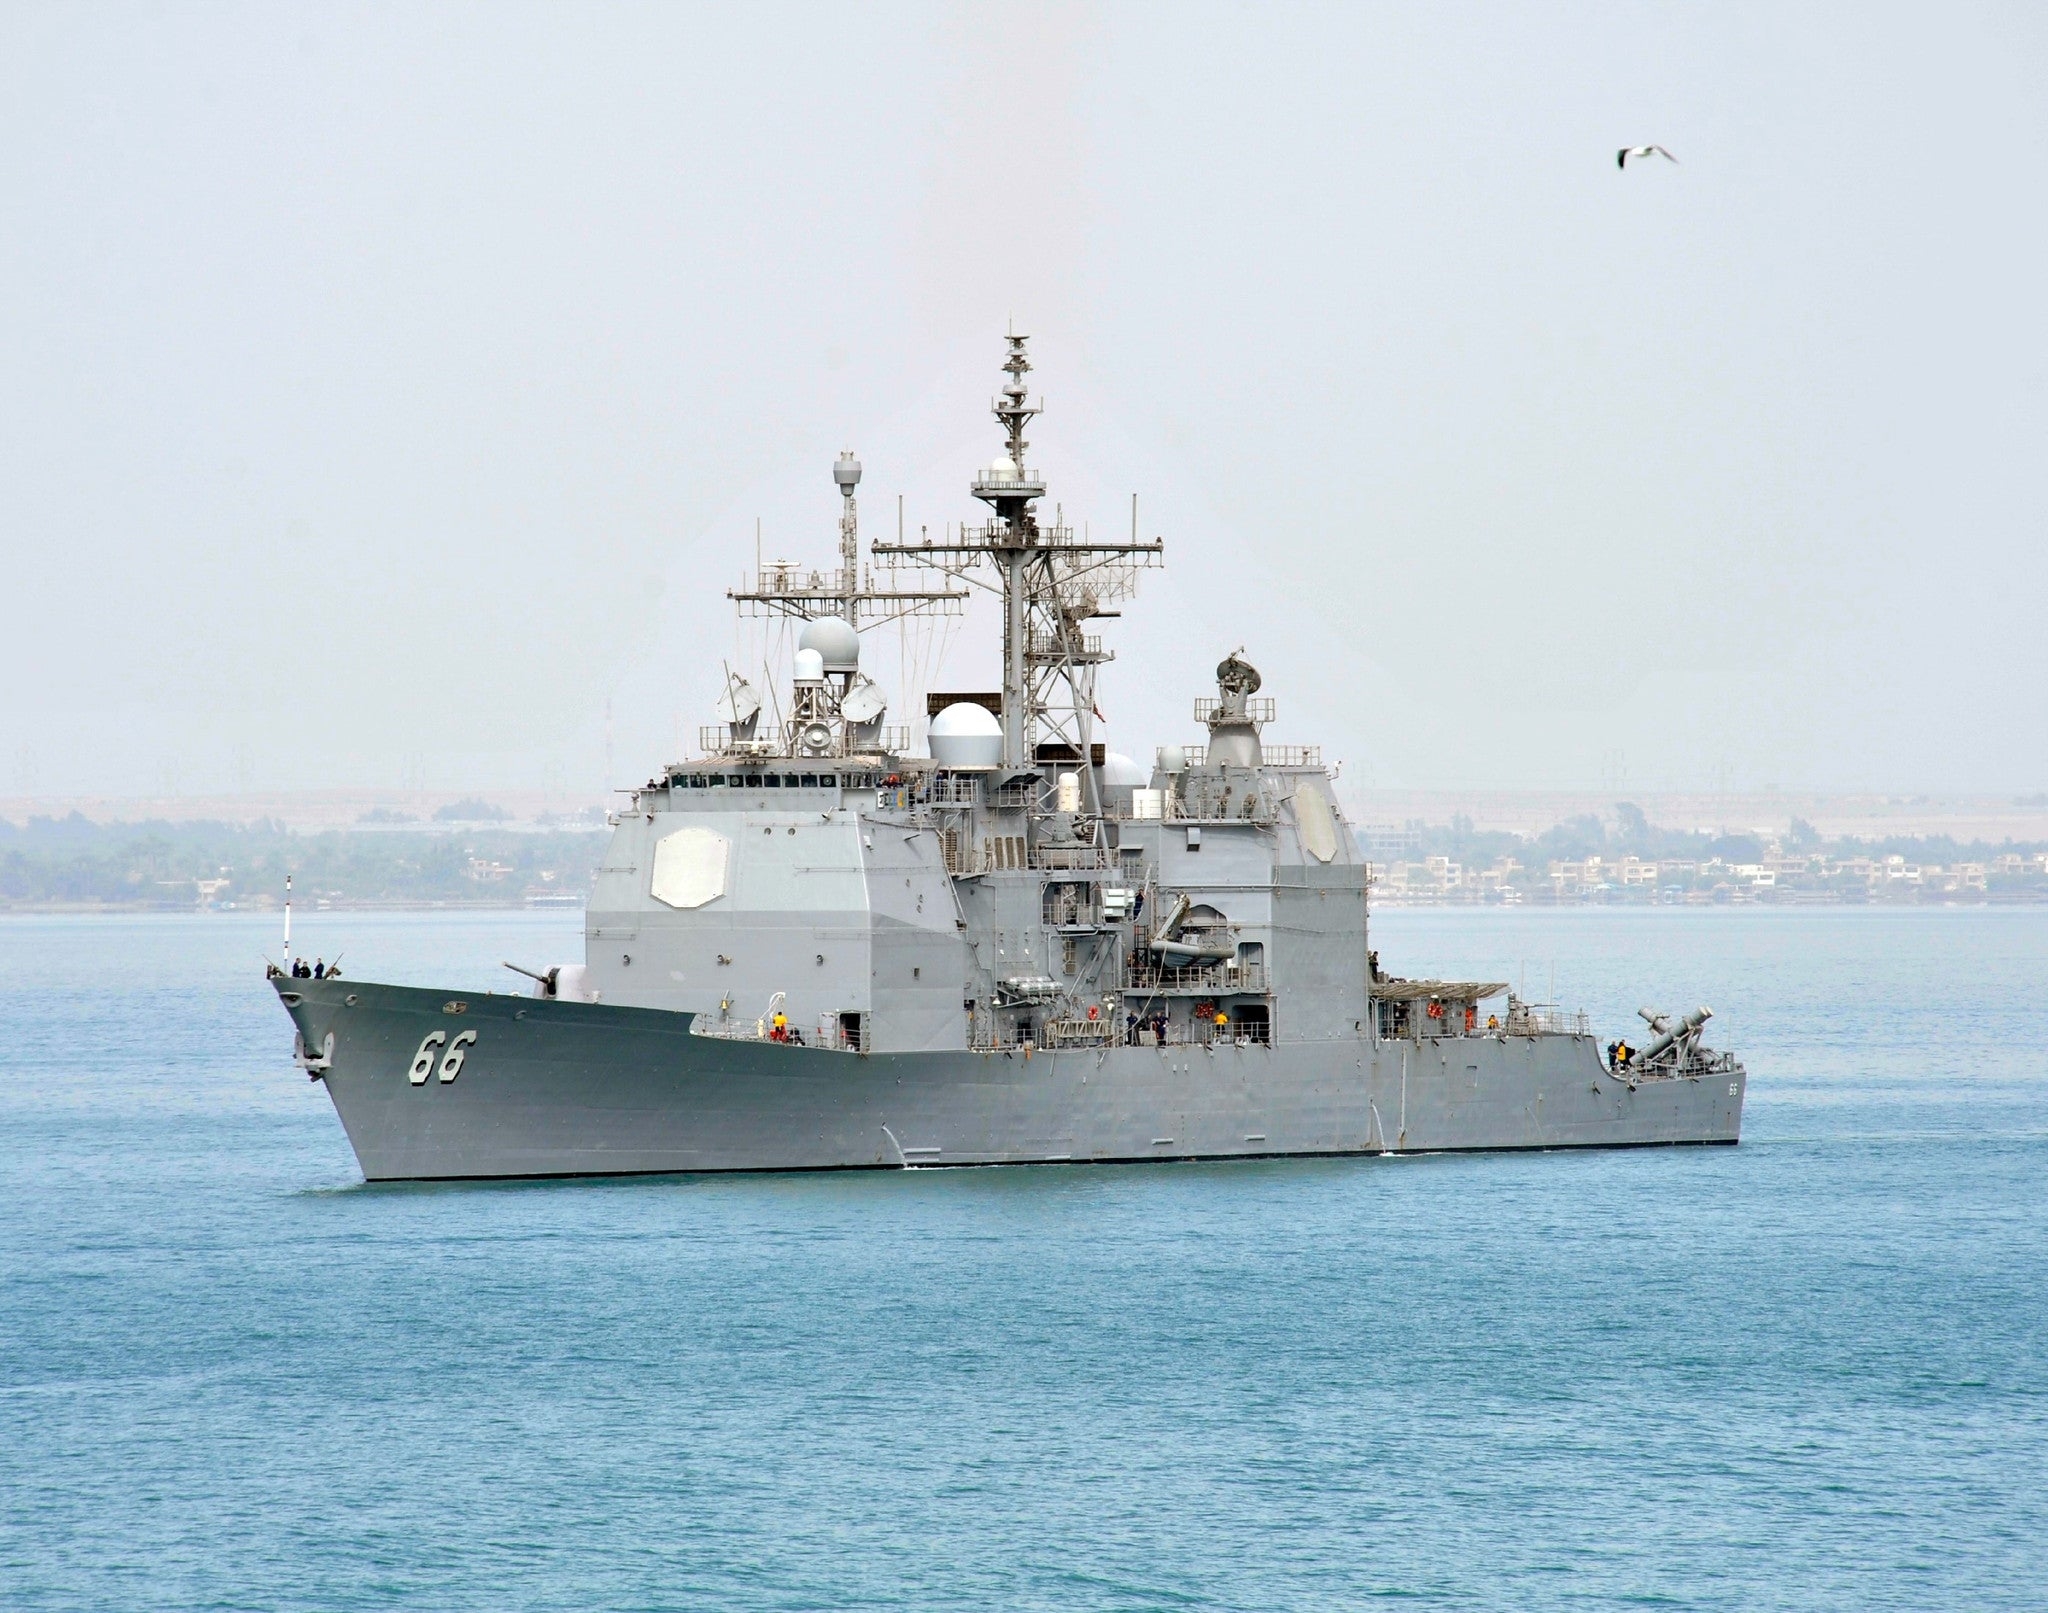 "USS Hue City CG-66 Suez Canal March 16, 2013 - 8 x 10"" Photograph"